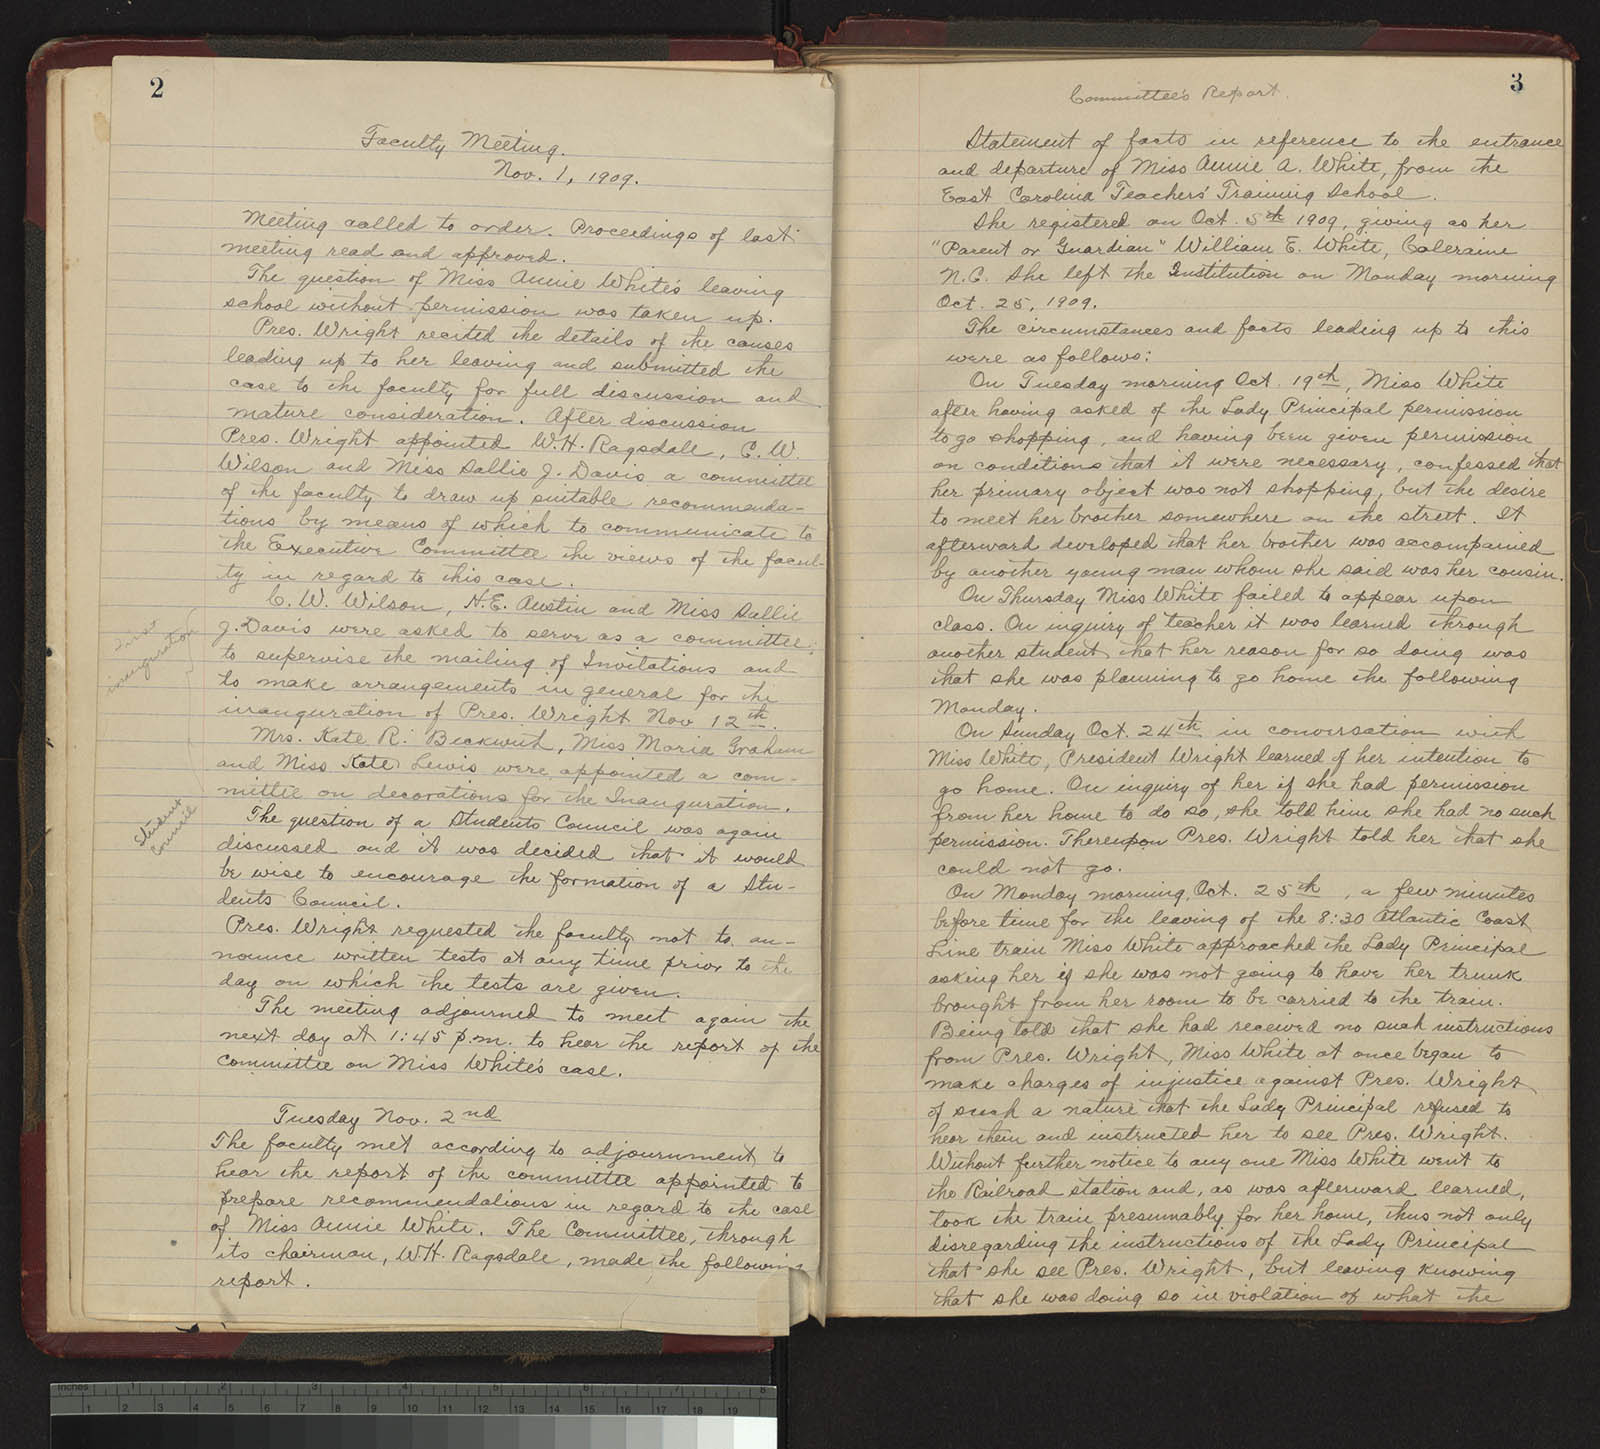 Faculty minutes from Nov 1, 1909